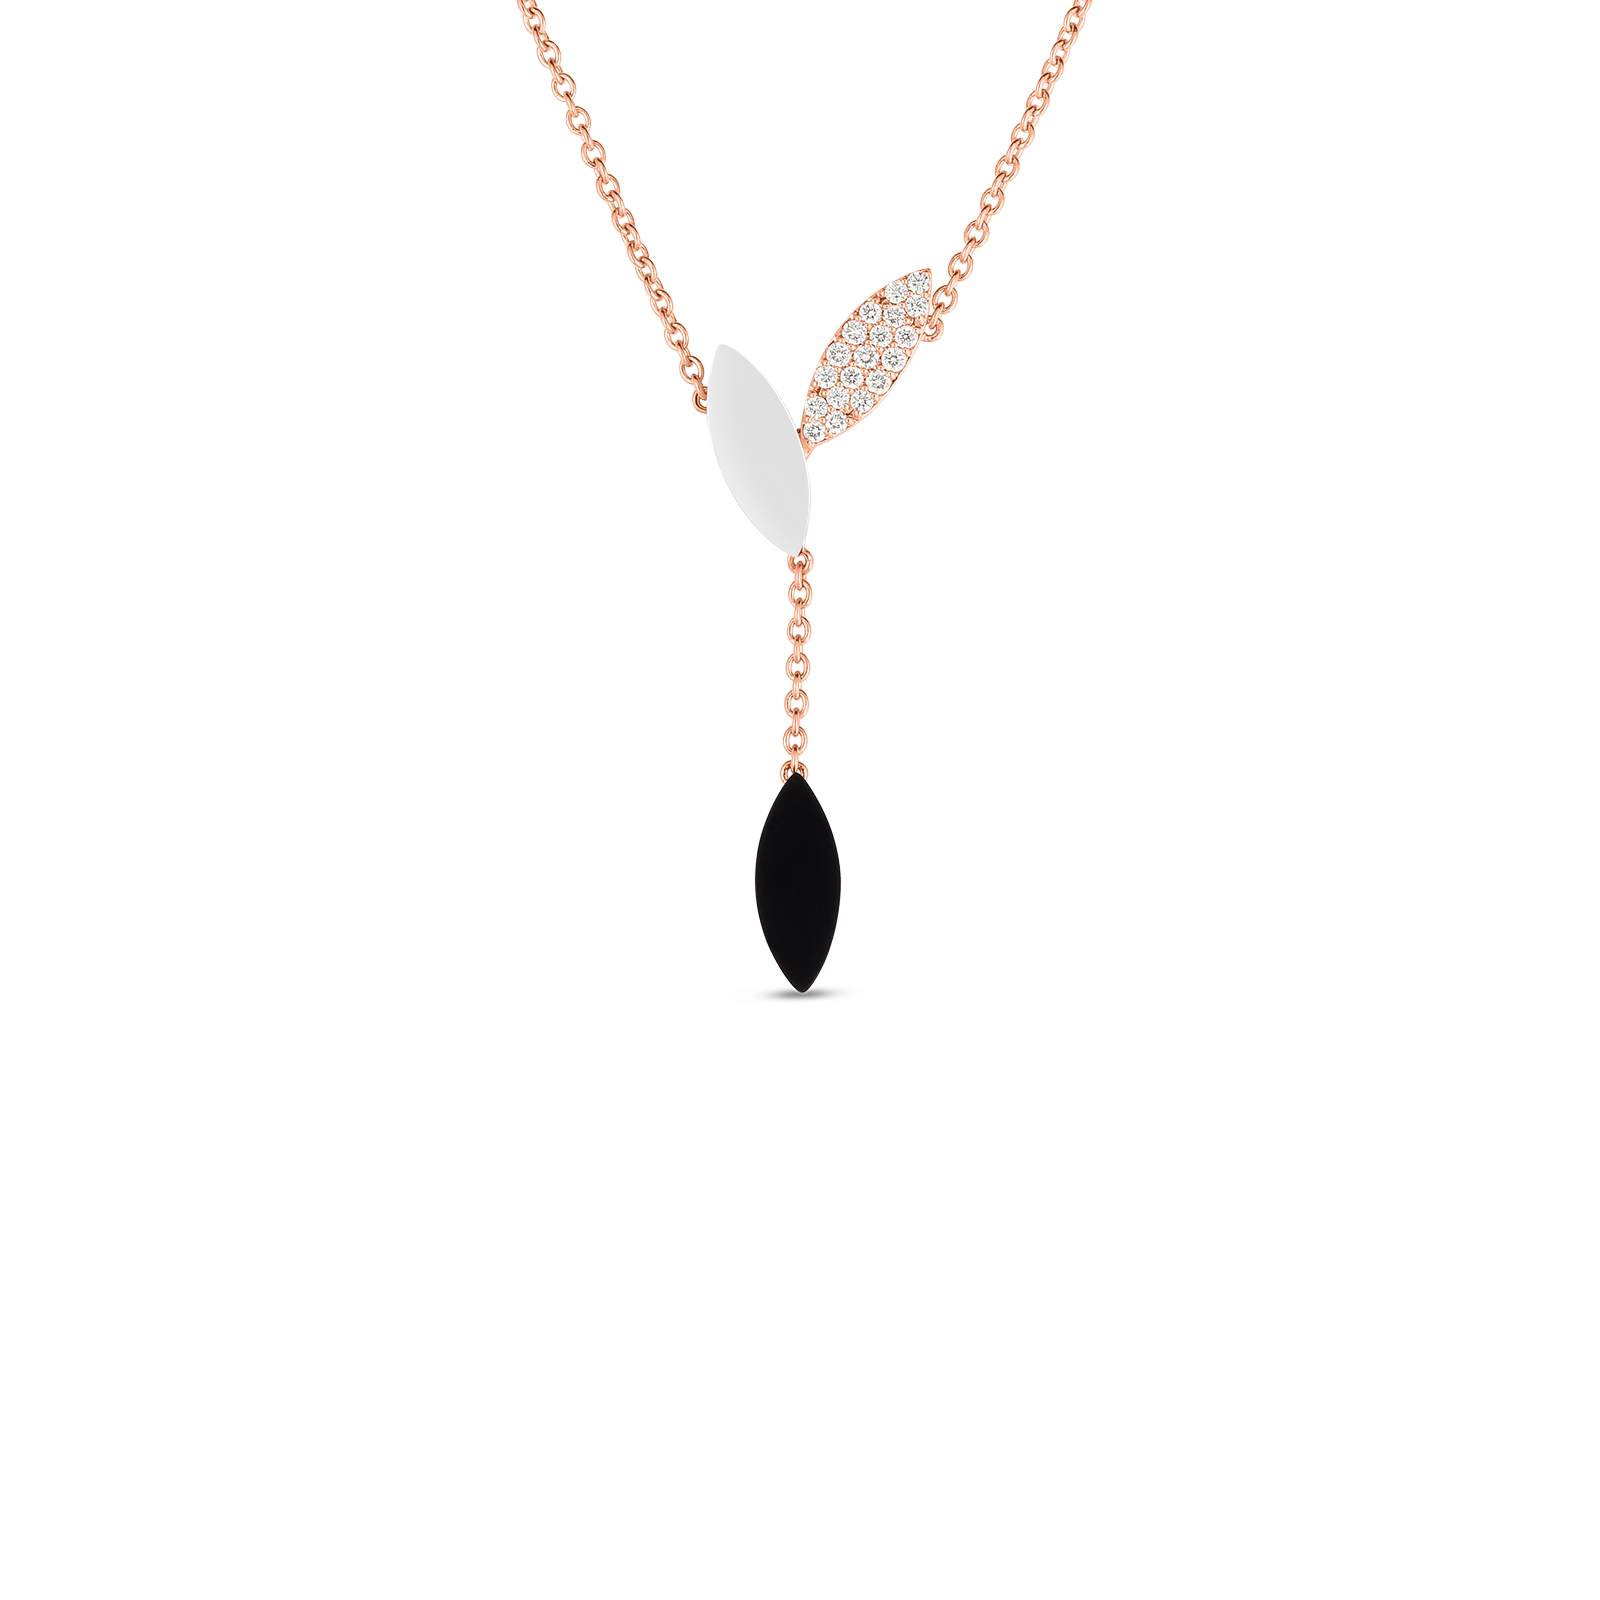 18kt Gold Petal Pendant With Diamonds, Mother Of Pearl And Black Jade